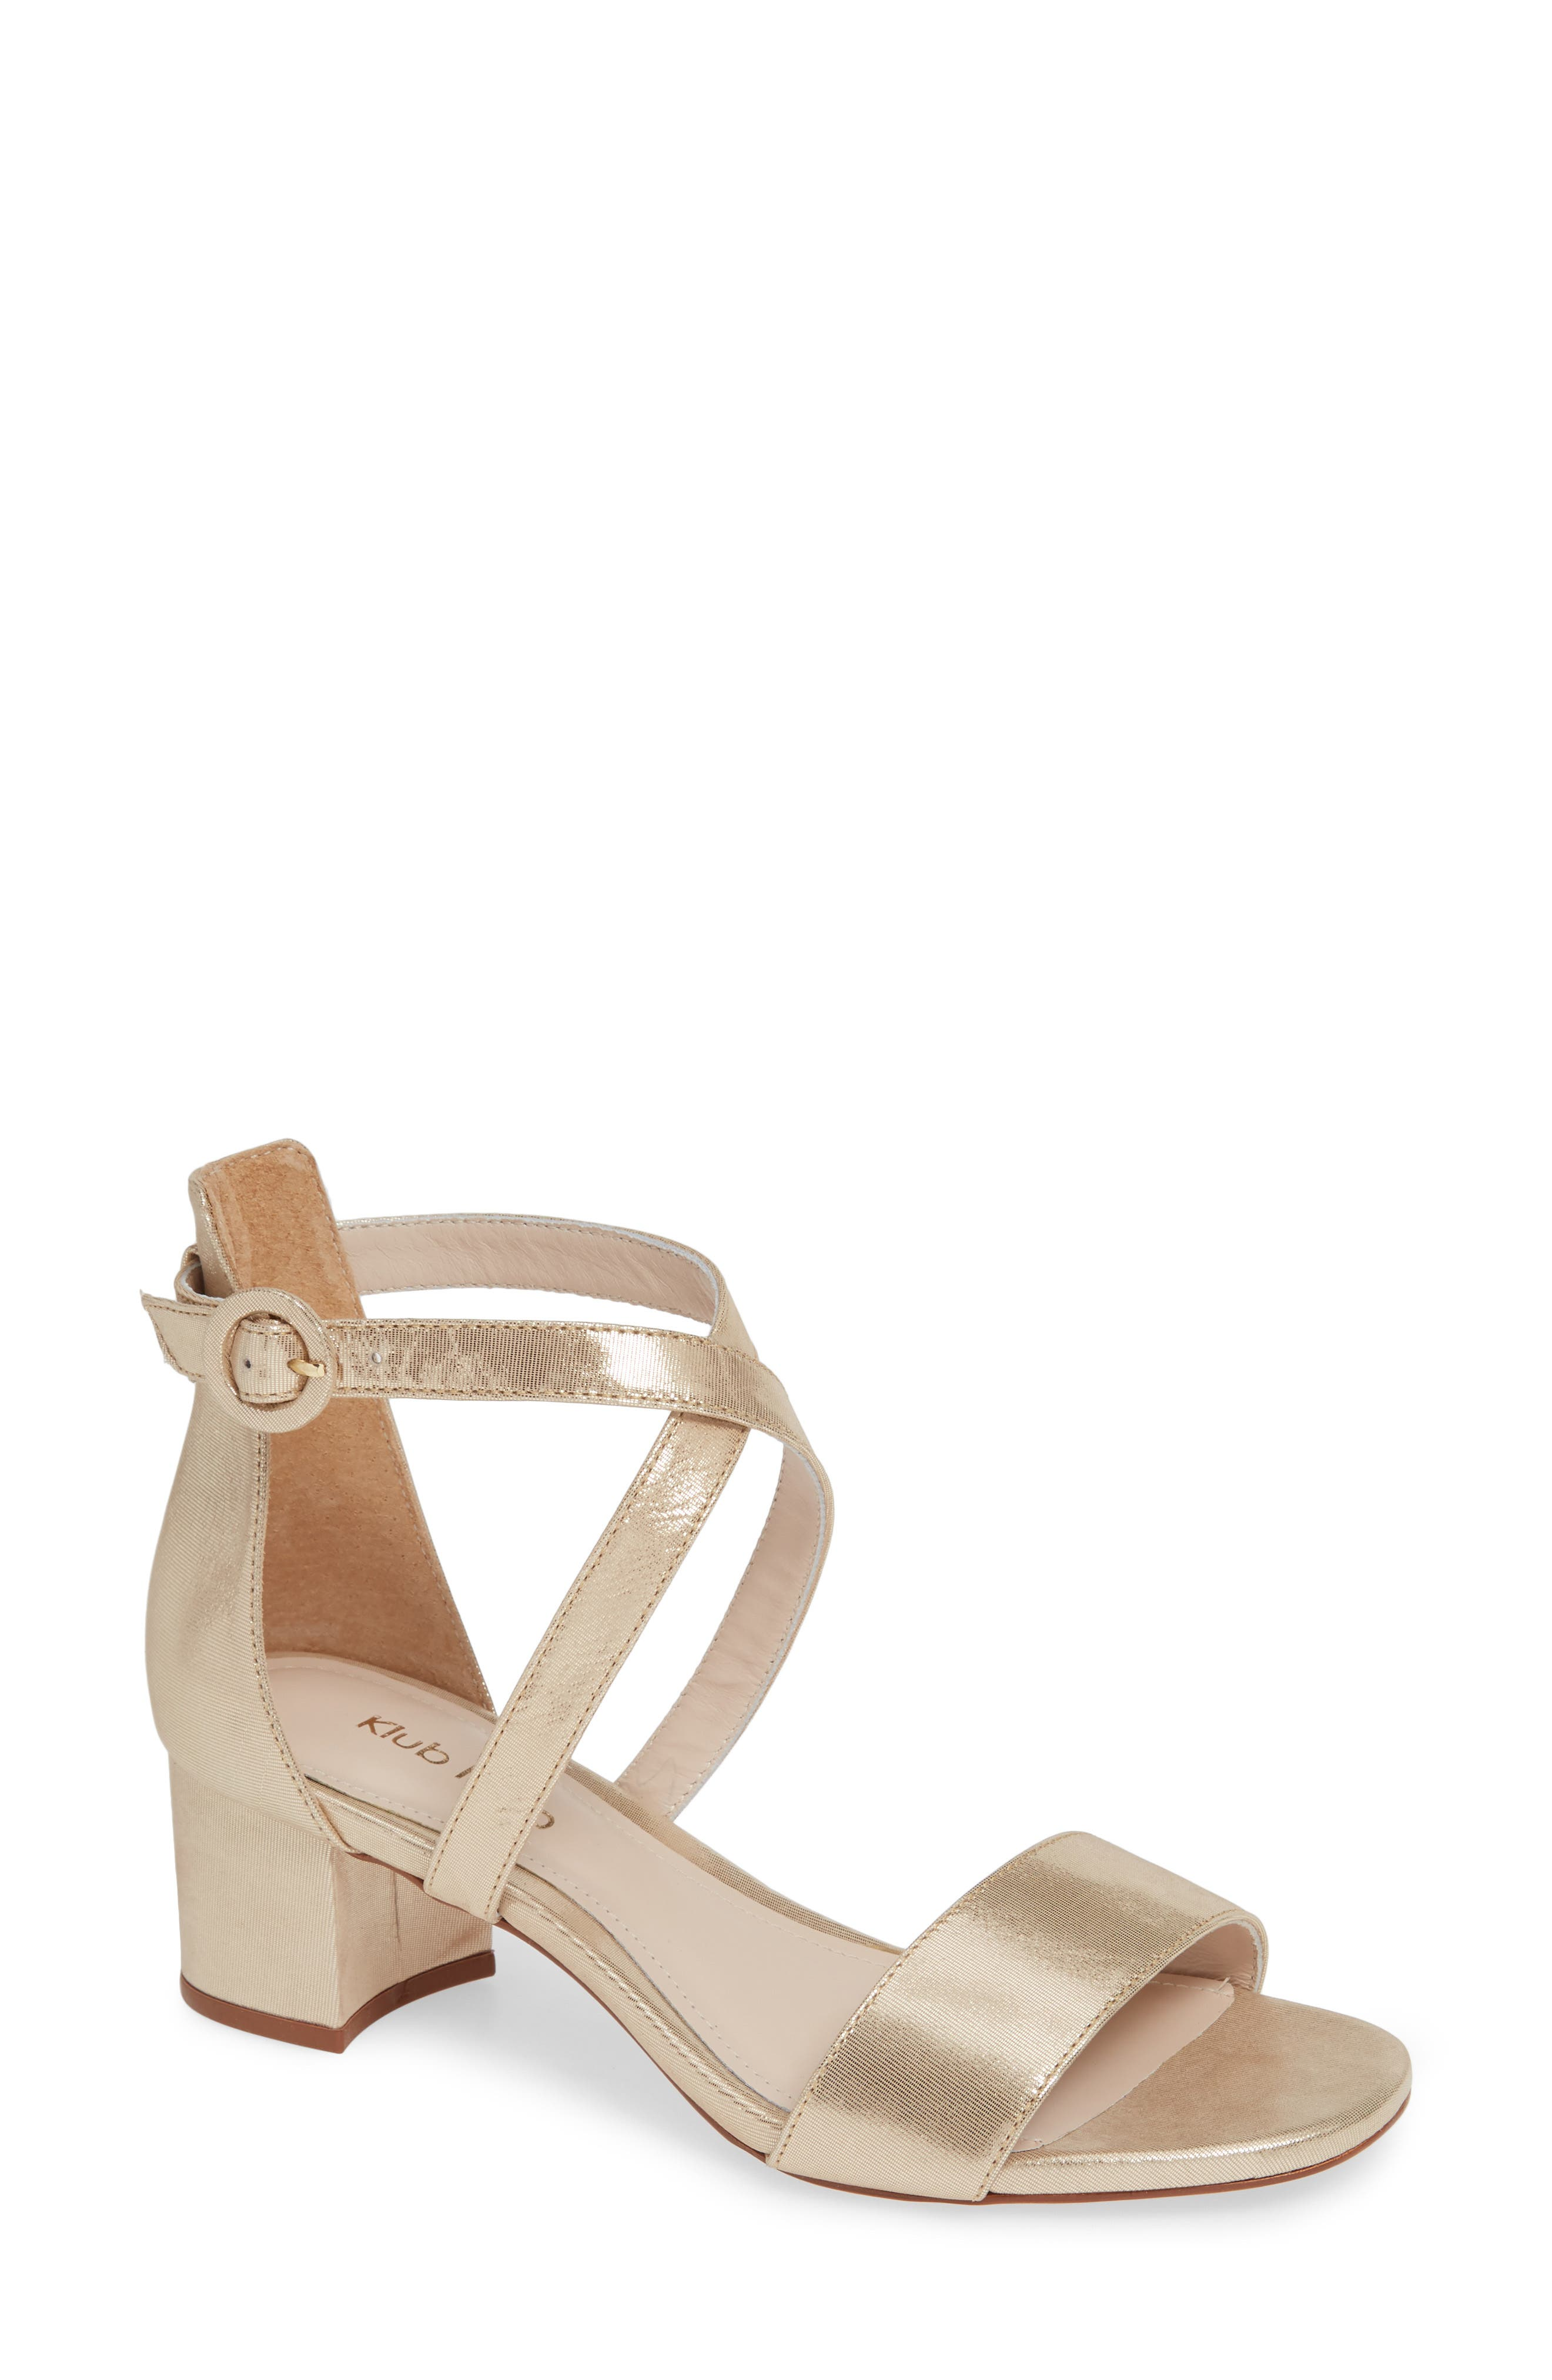 Raeyna Sandal,                         Main,                         color, CHAMPAGNE LEATHER